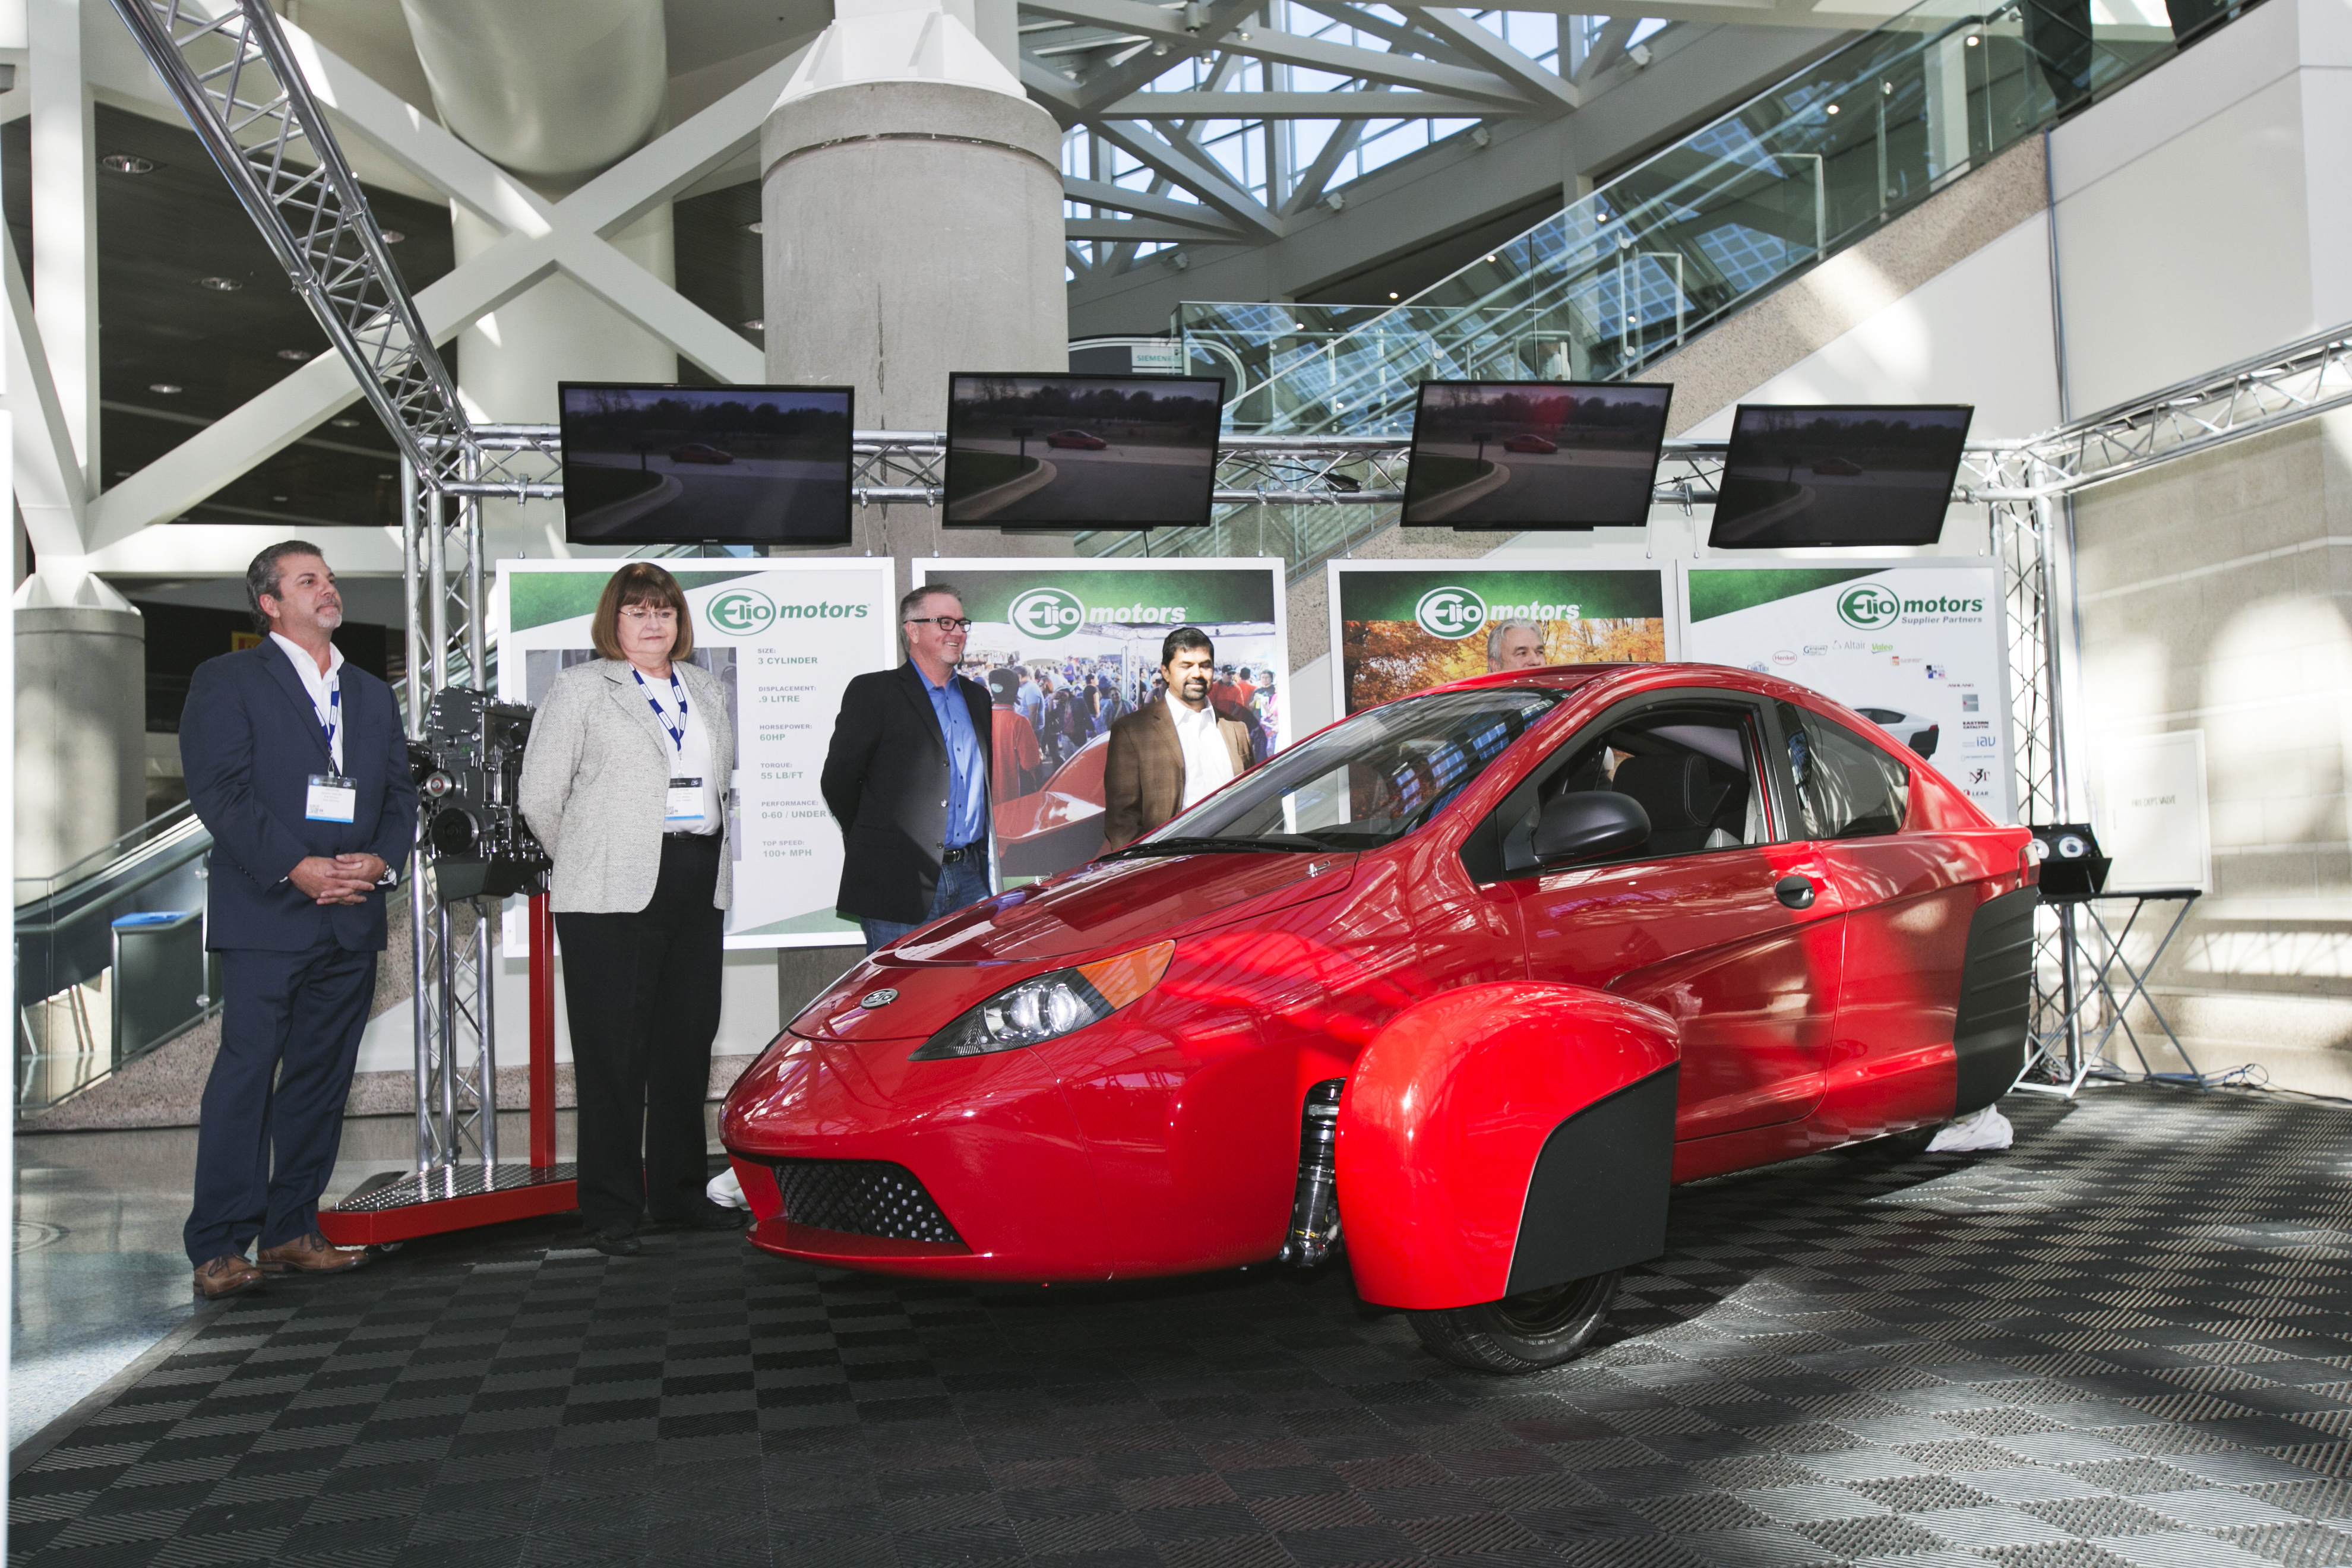 Elio Motors, with its low cost and high efficiency three-wheeler, was a highlight of last year's Top Ten Auto Startups List.